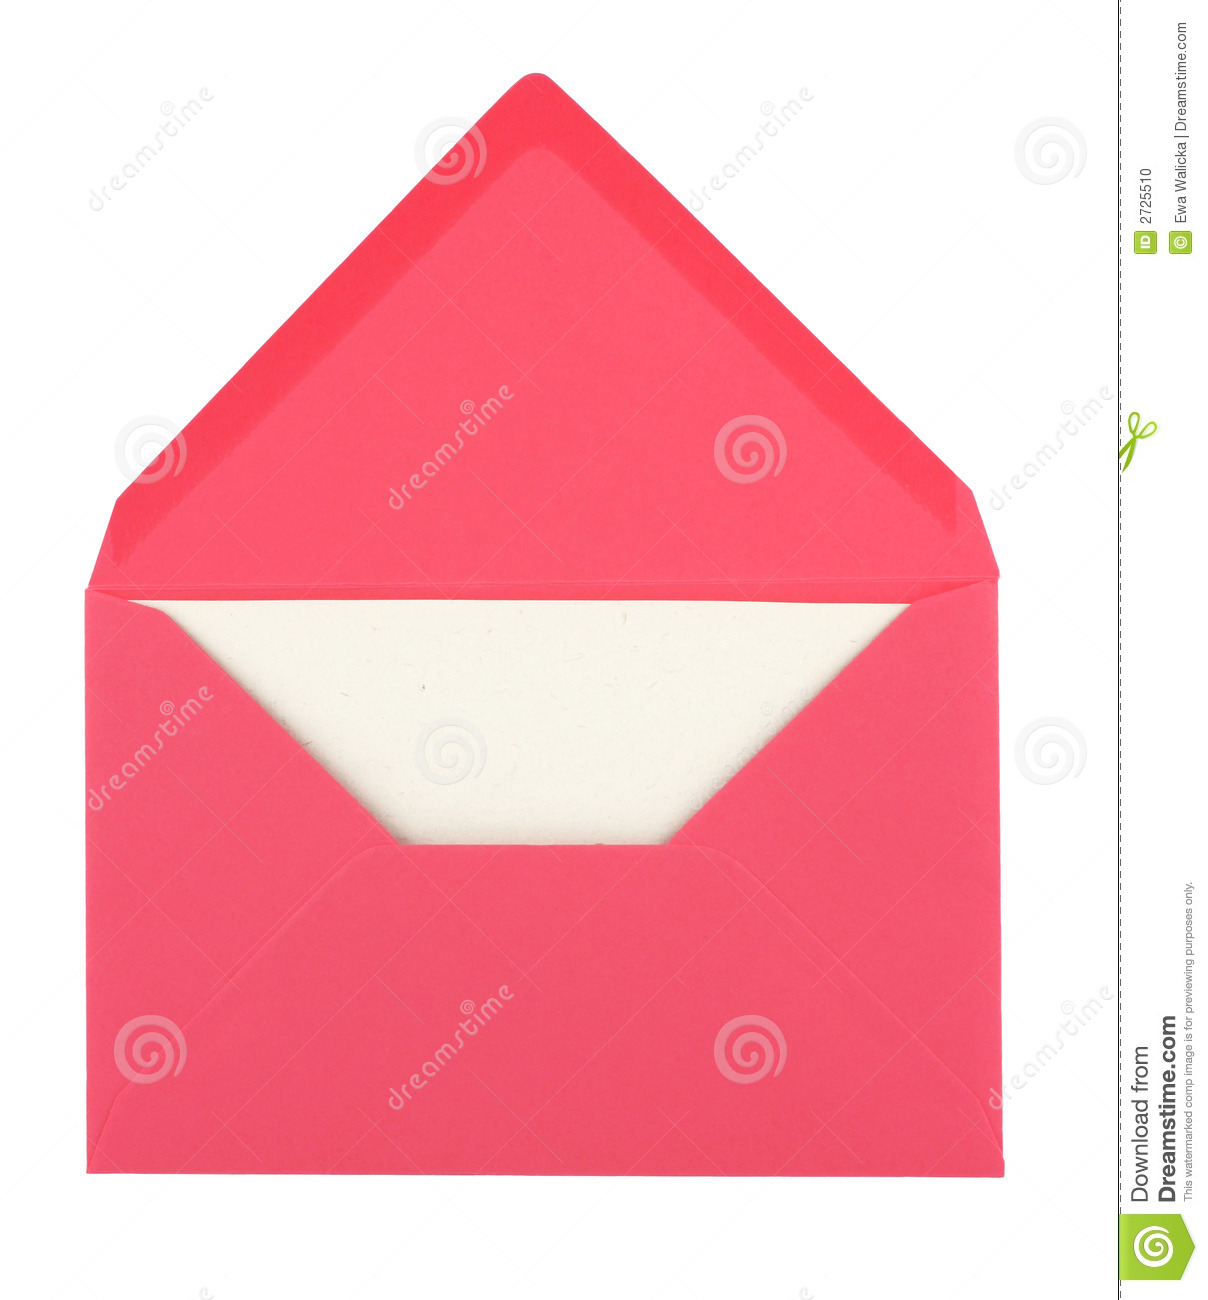 Pink envelope and card